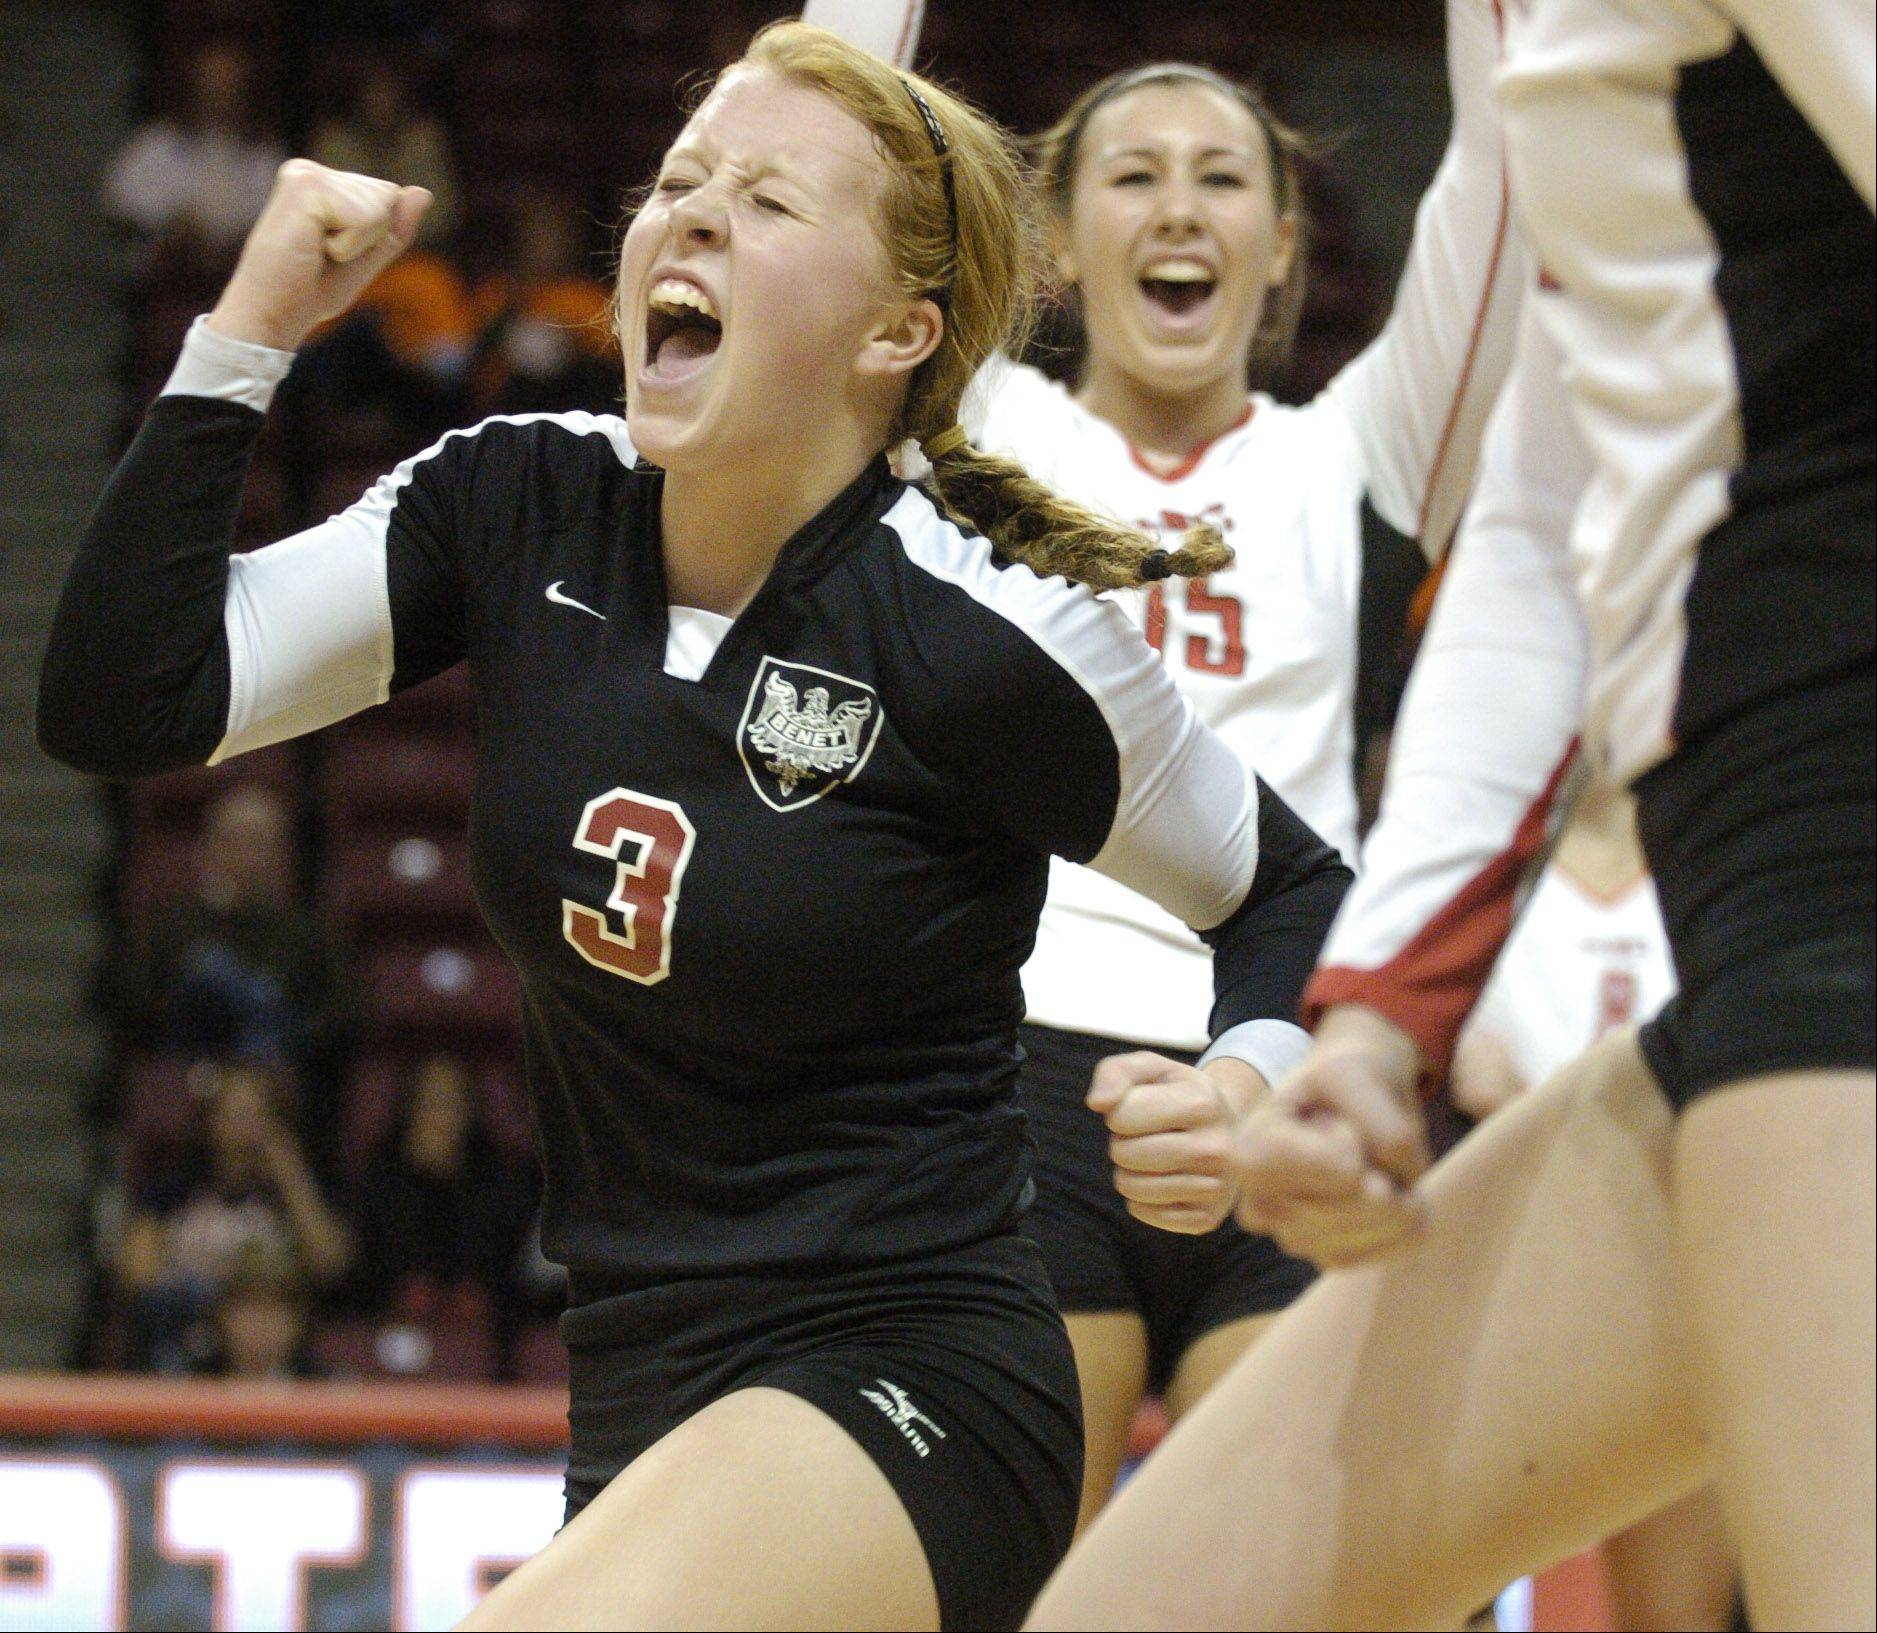 Benet's Sheila Doyle reacts to a point against New Trier in the Class 4A championship volleyball game Saturday.